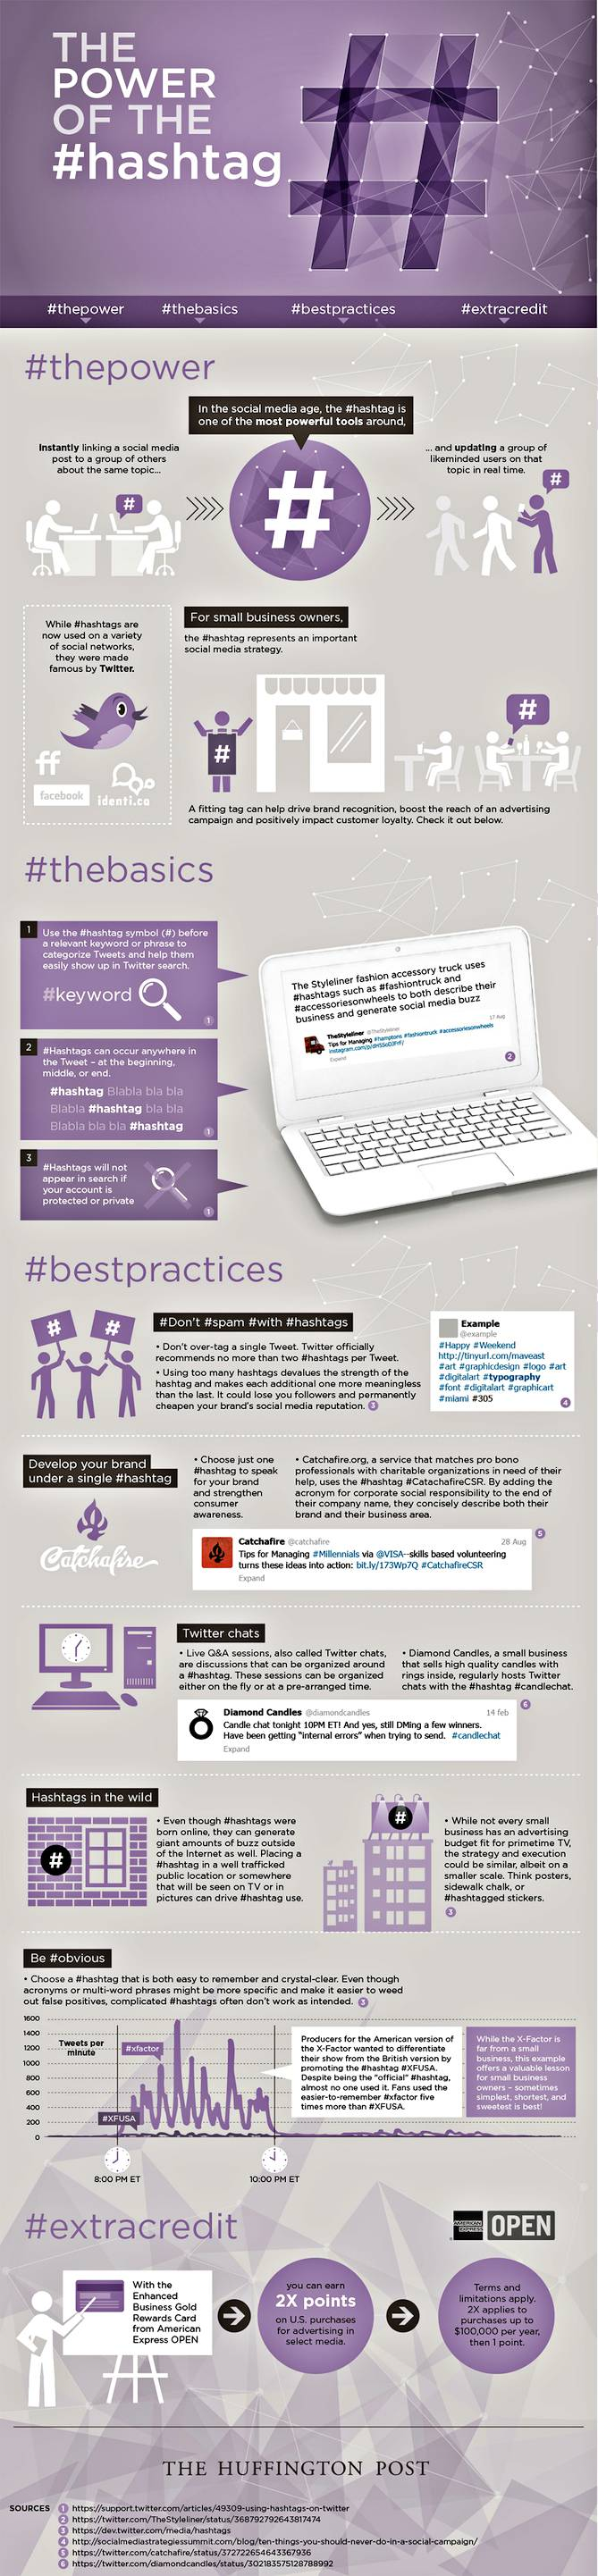 How to Use Twitter Hashtags INFOGRAPHIC social media